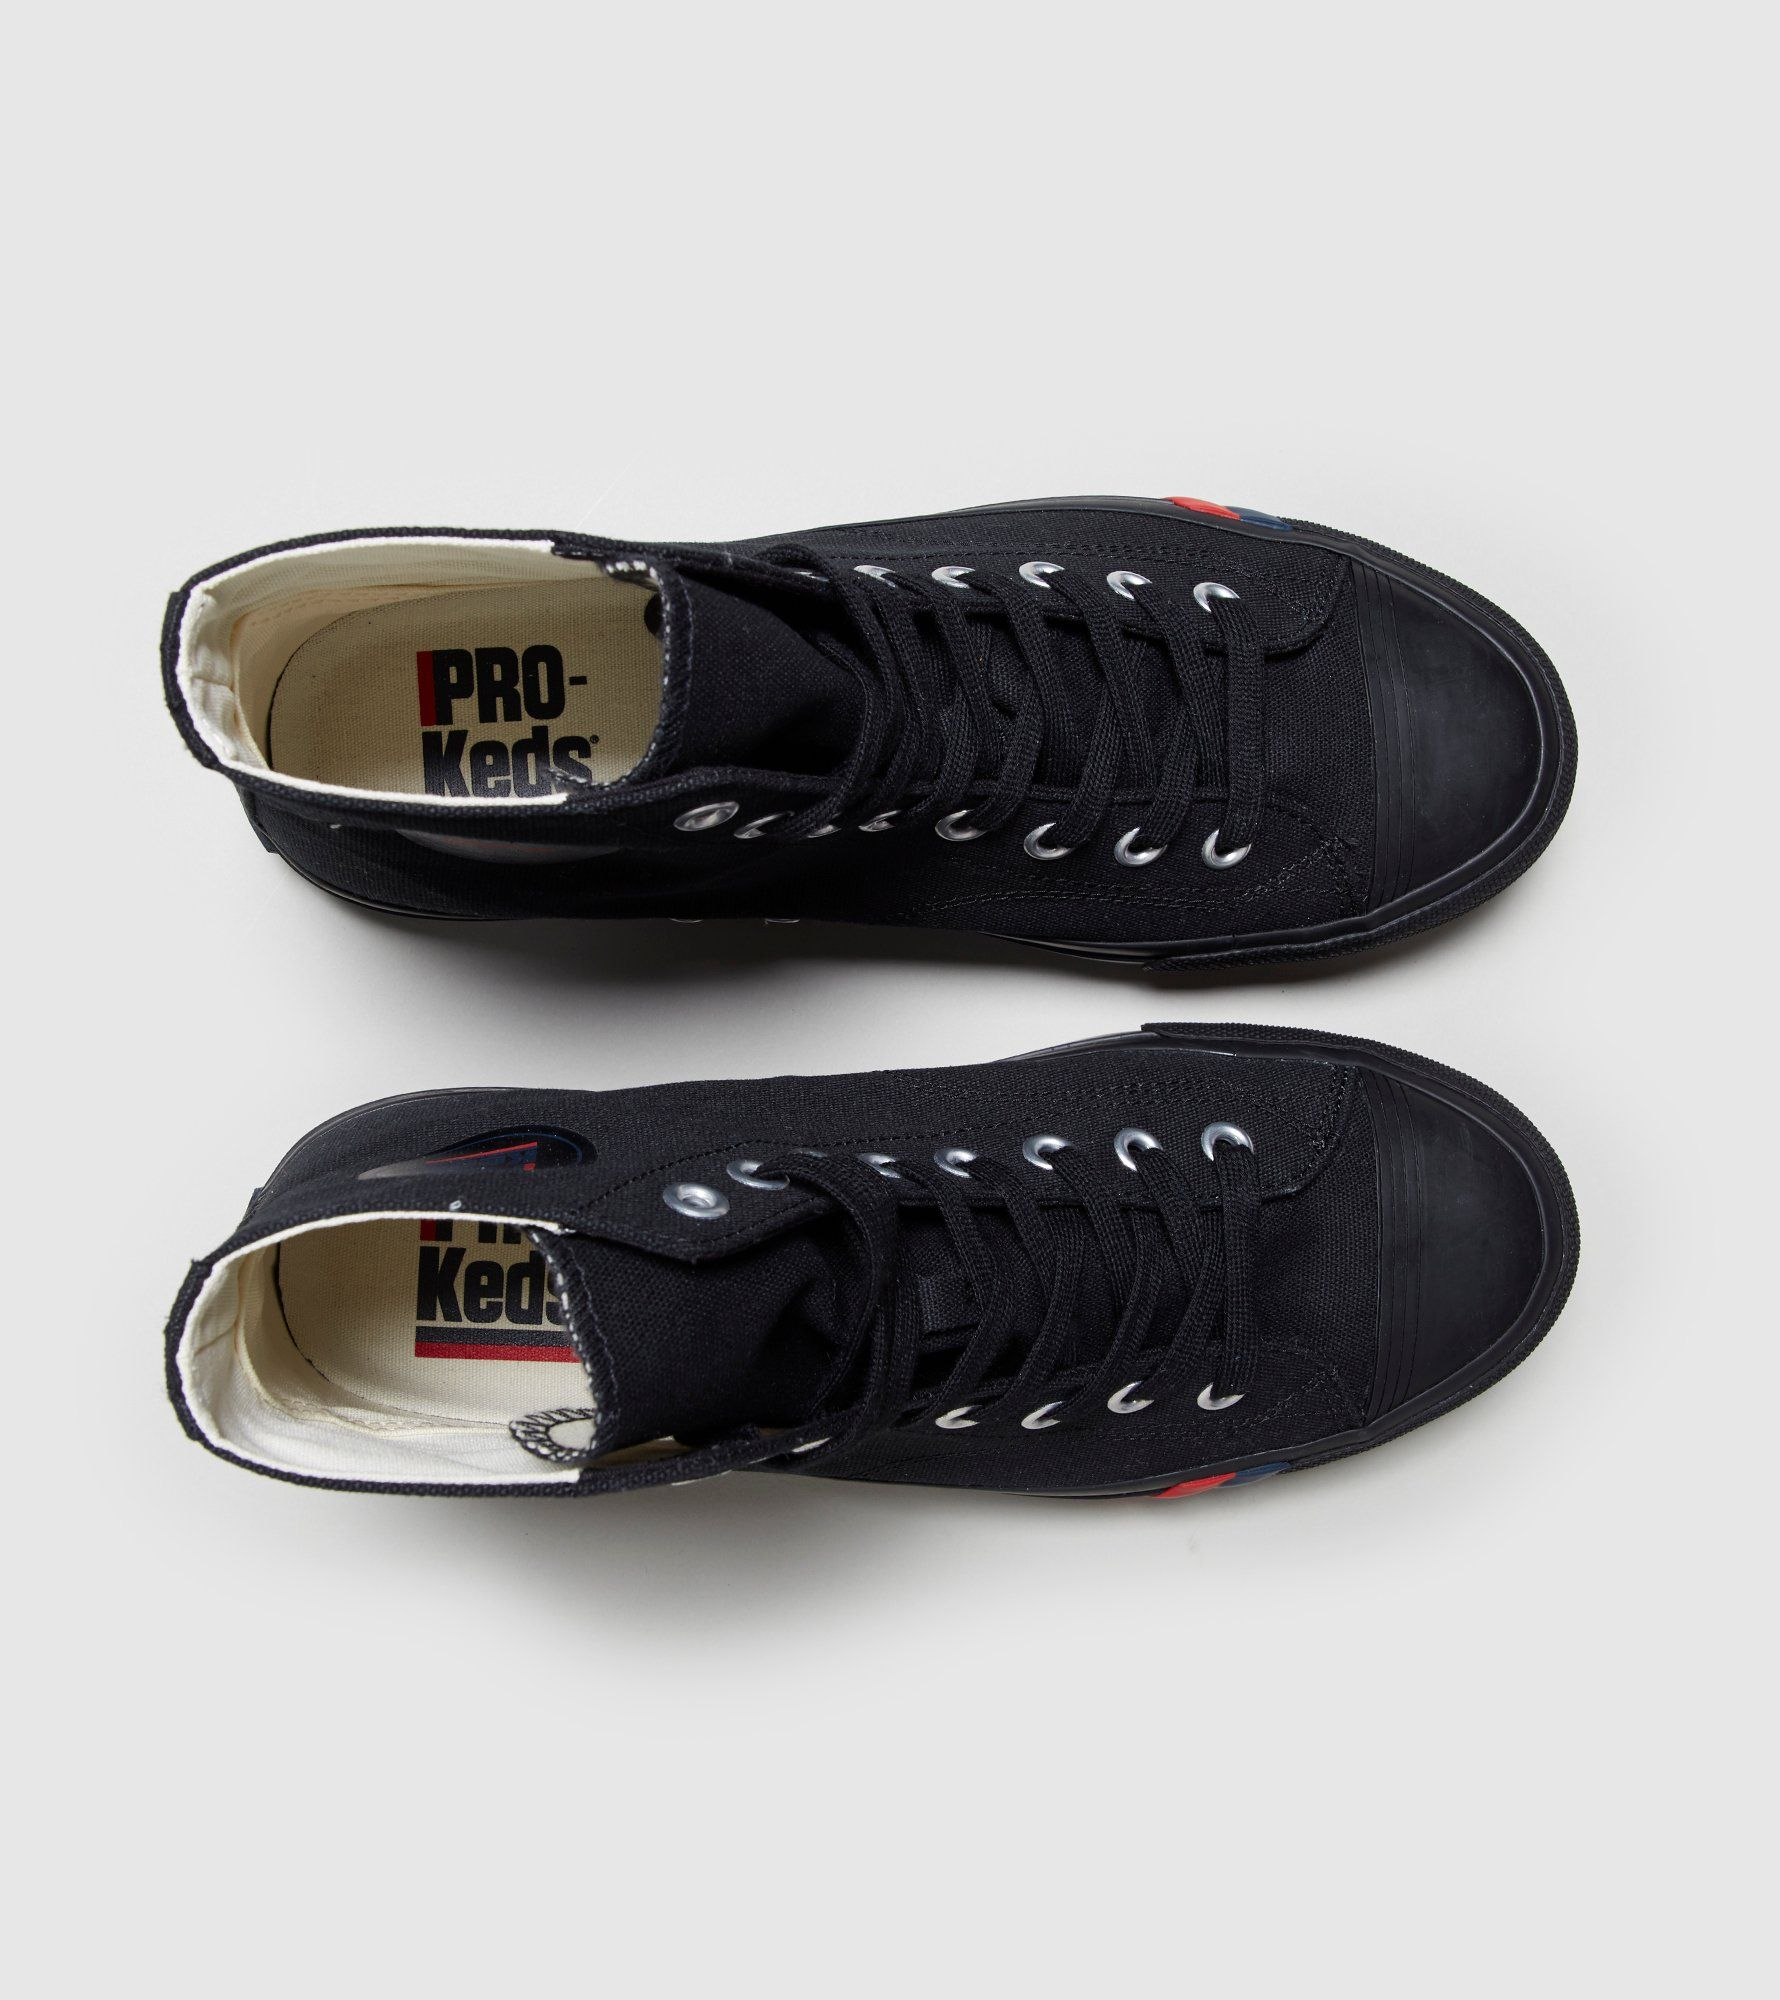 Pro-Keds Royal High